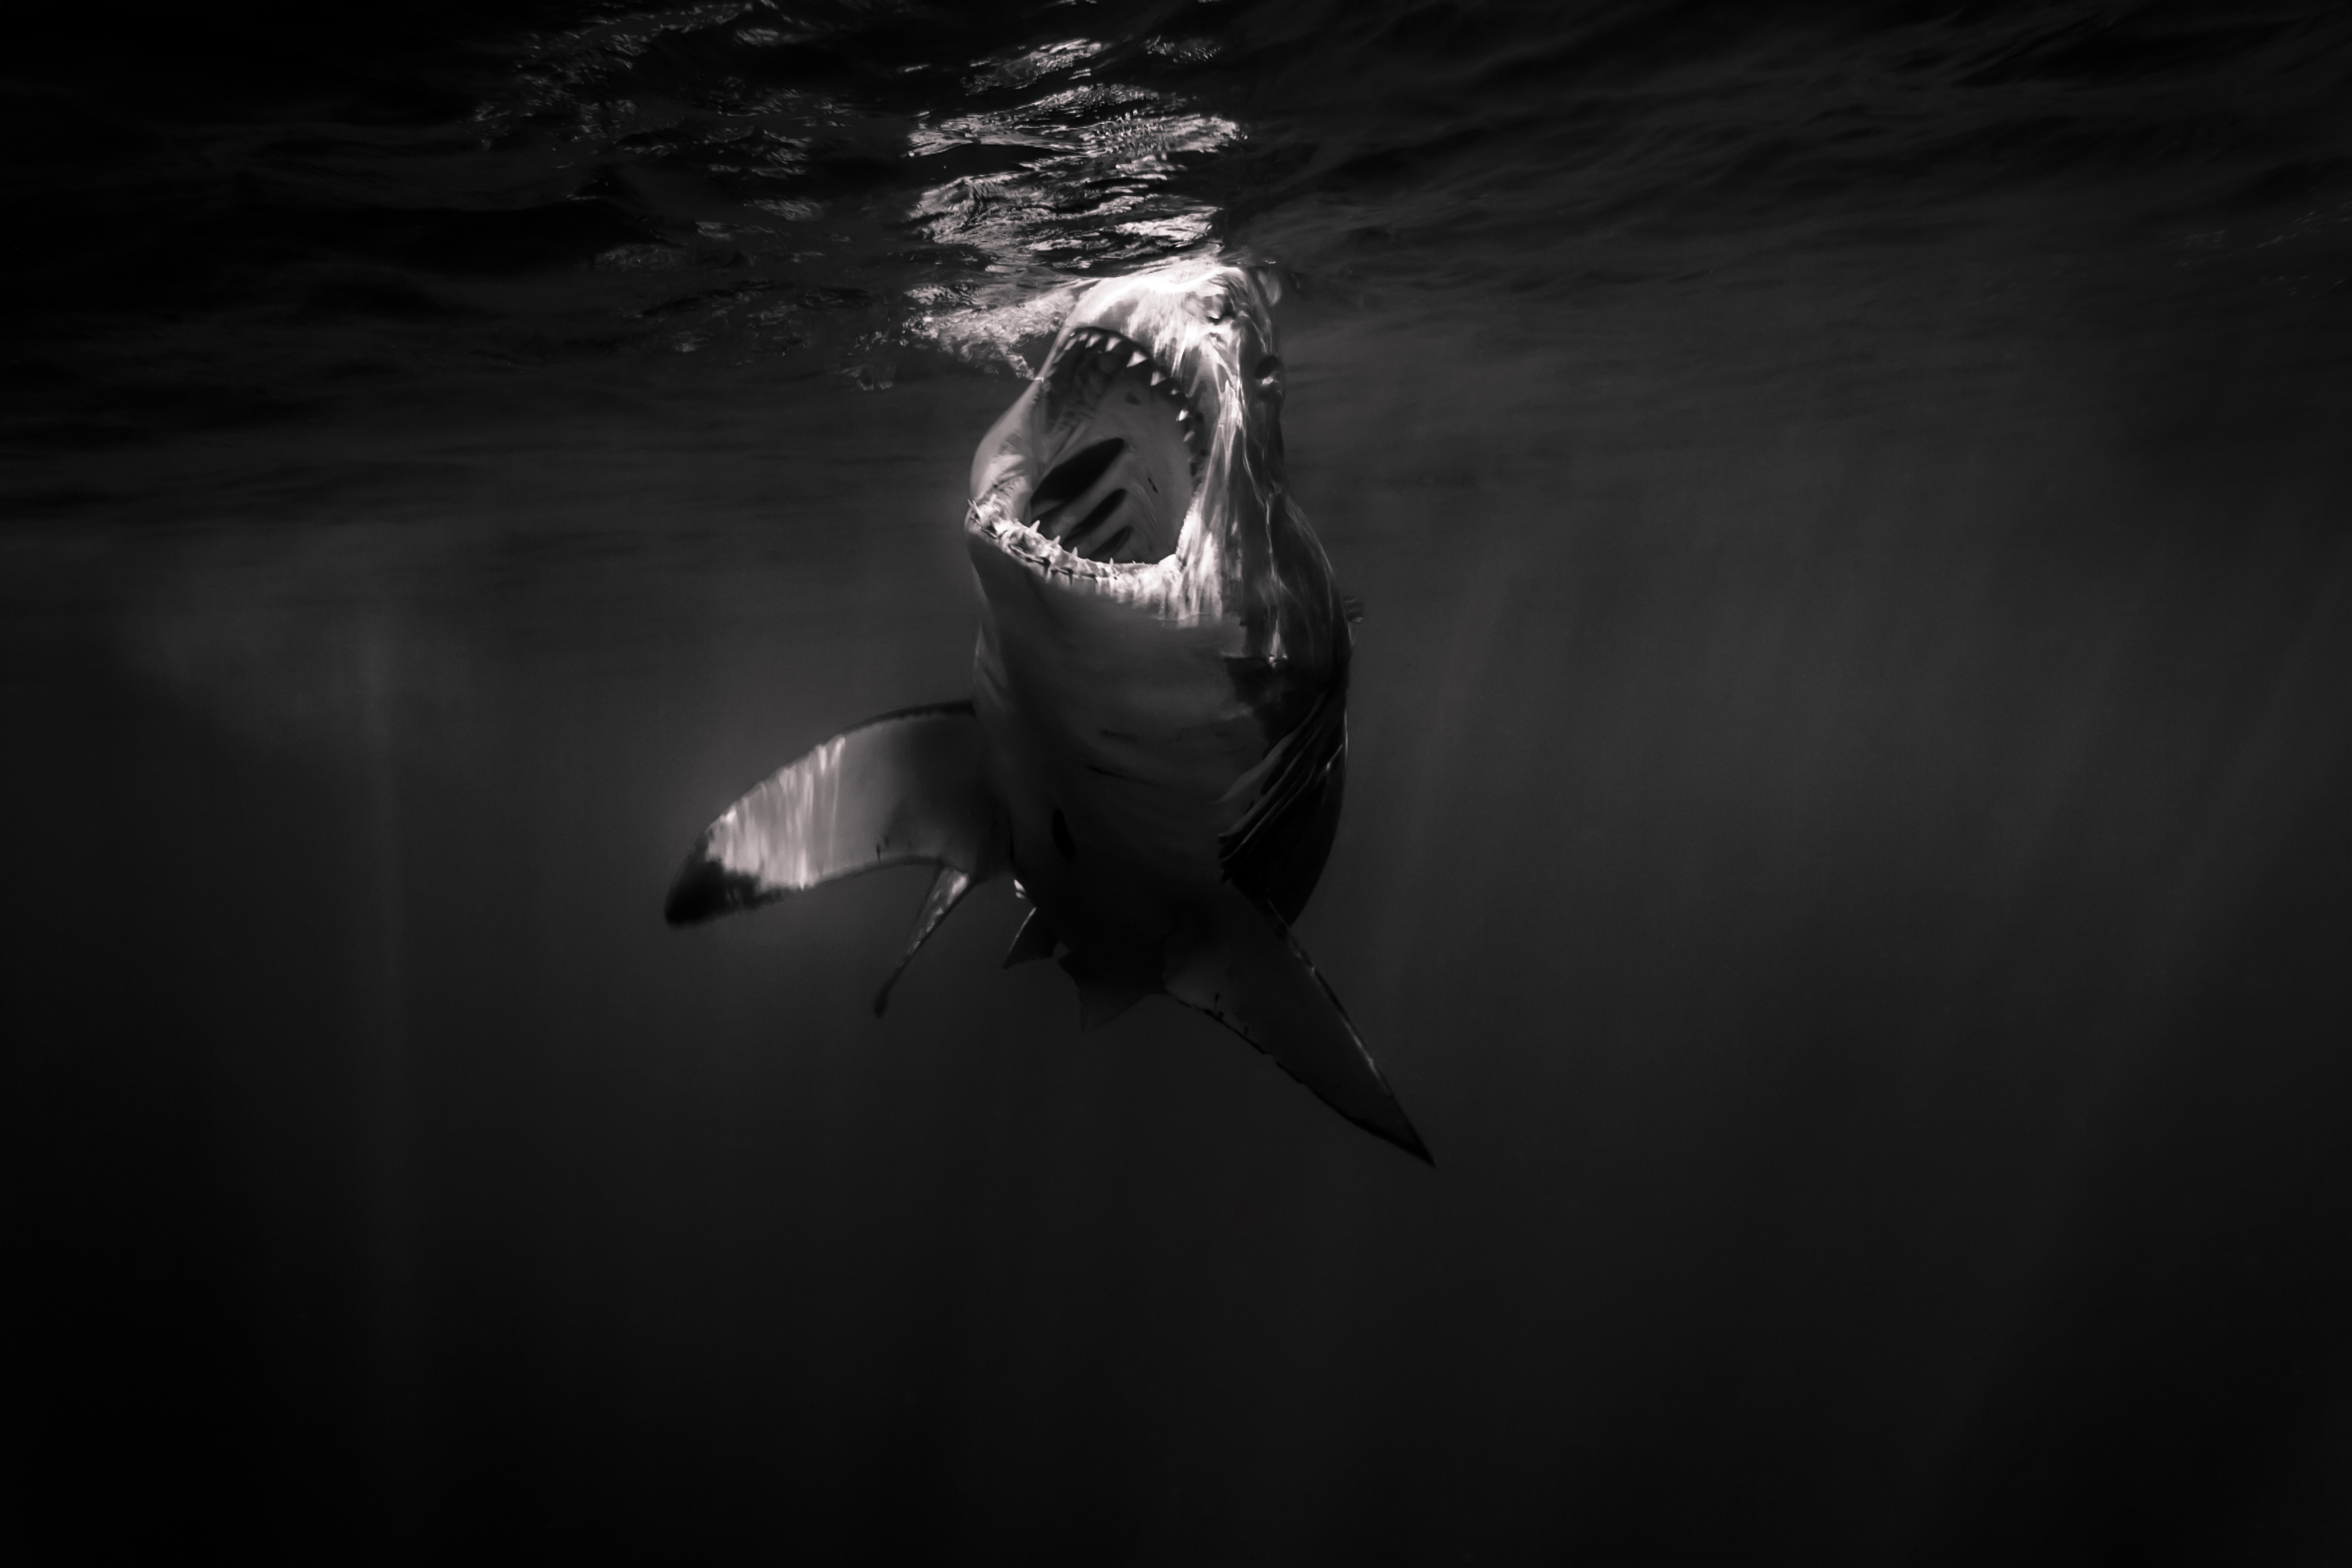 Shark black and white great white shark open mouth just amazing wildlife archives